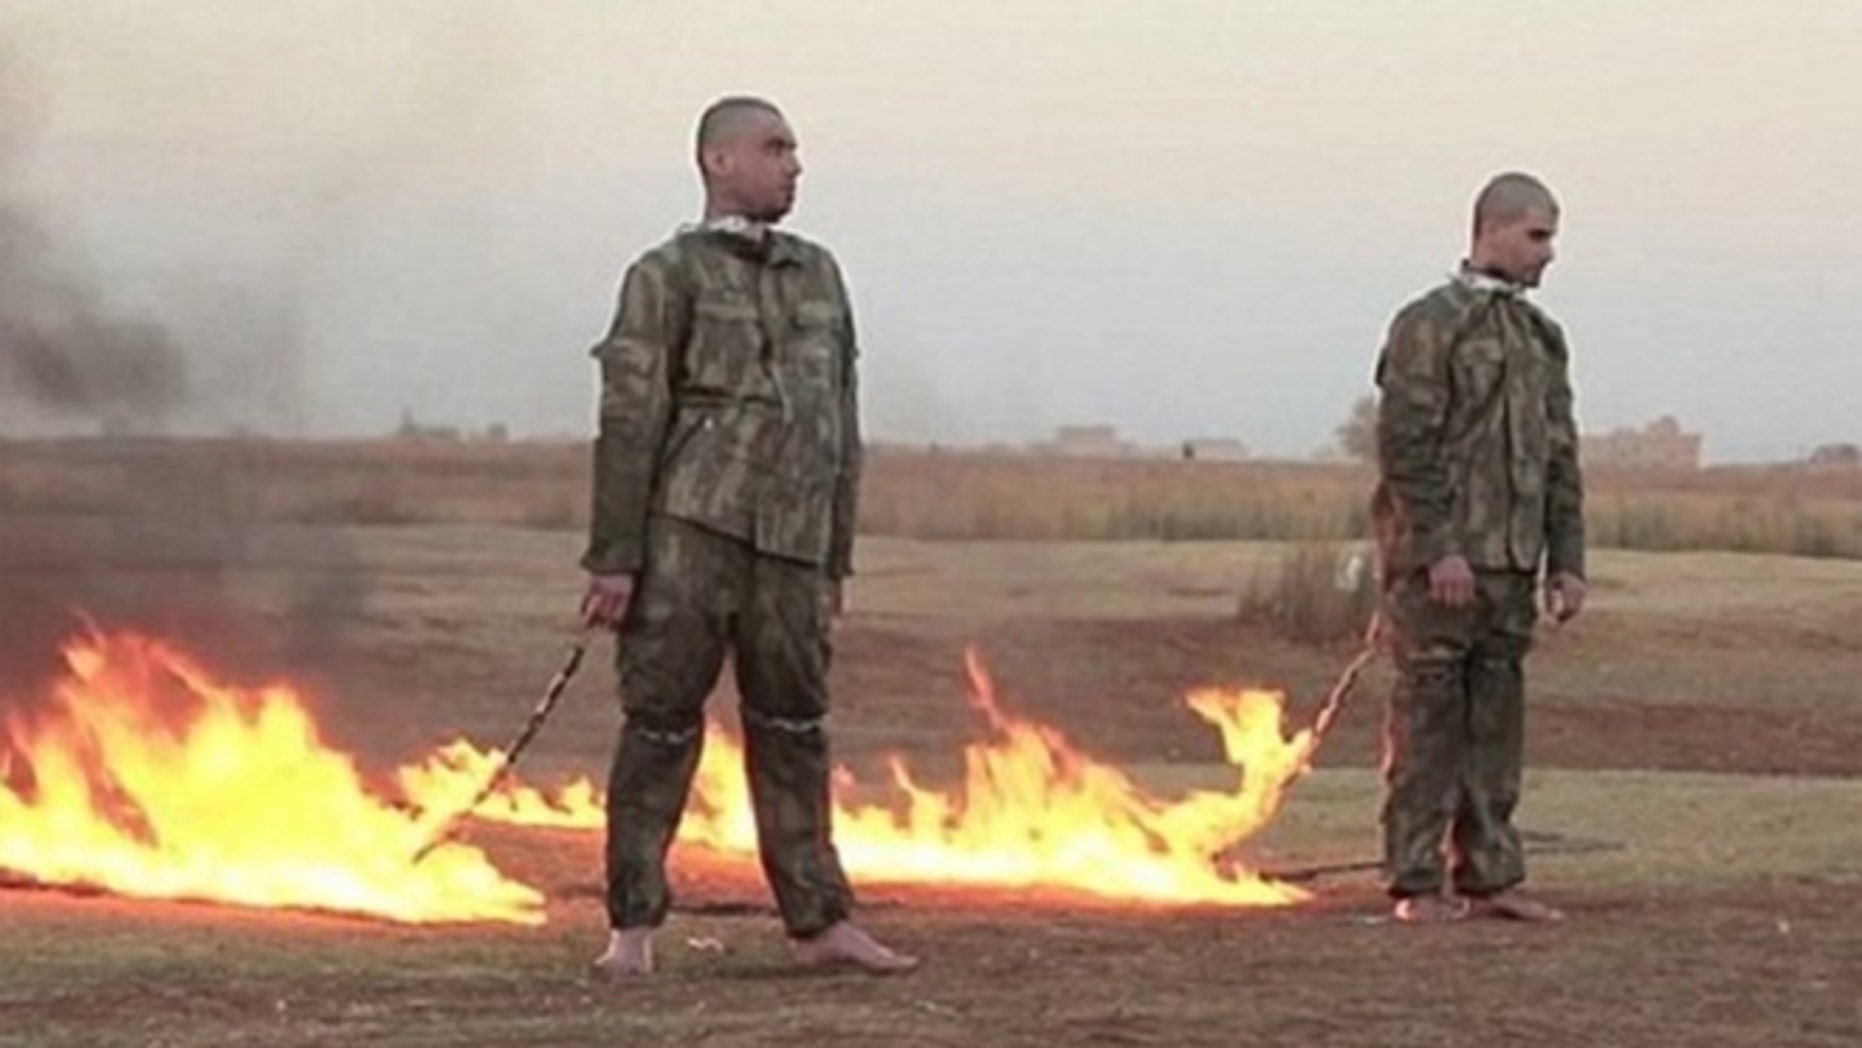 Grim screenshot from ISIS video shows two Turkish soldiers moments before they were burned alive.